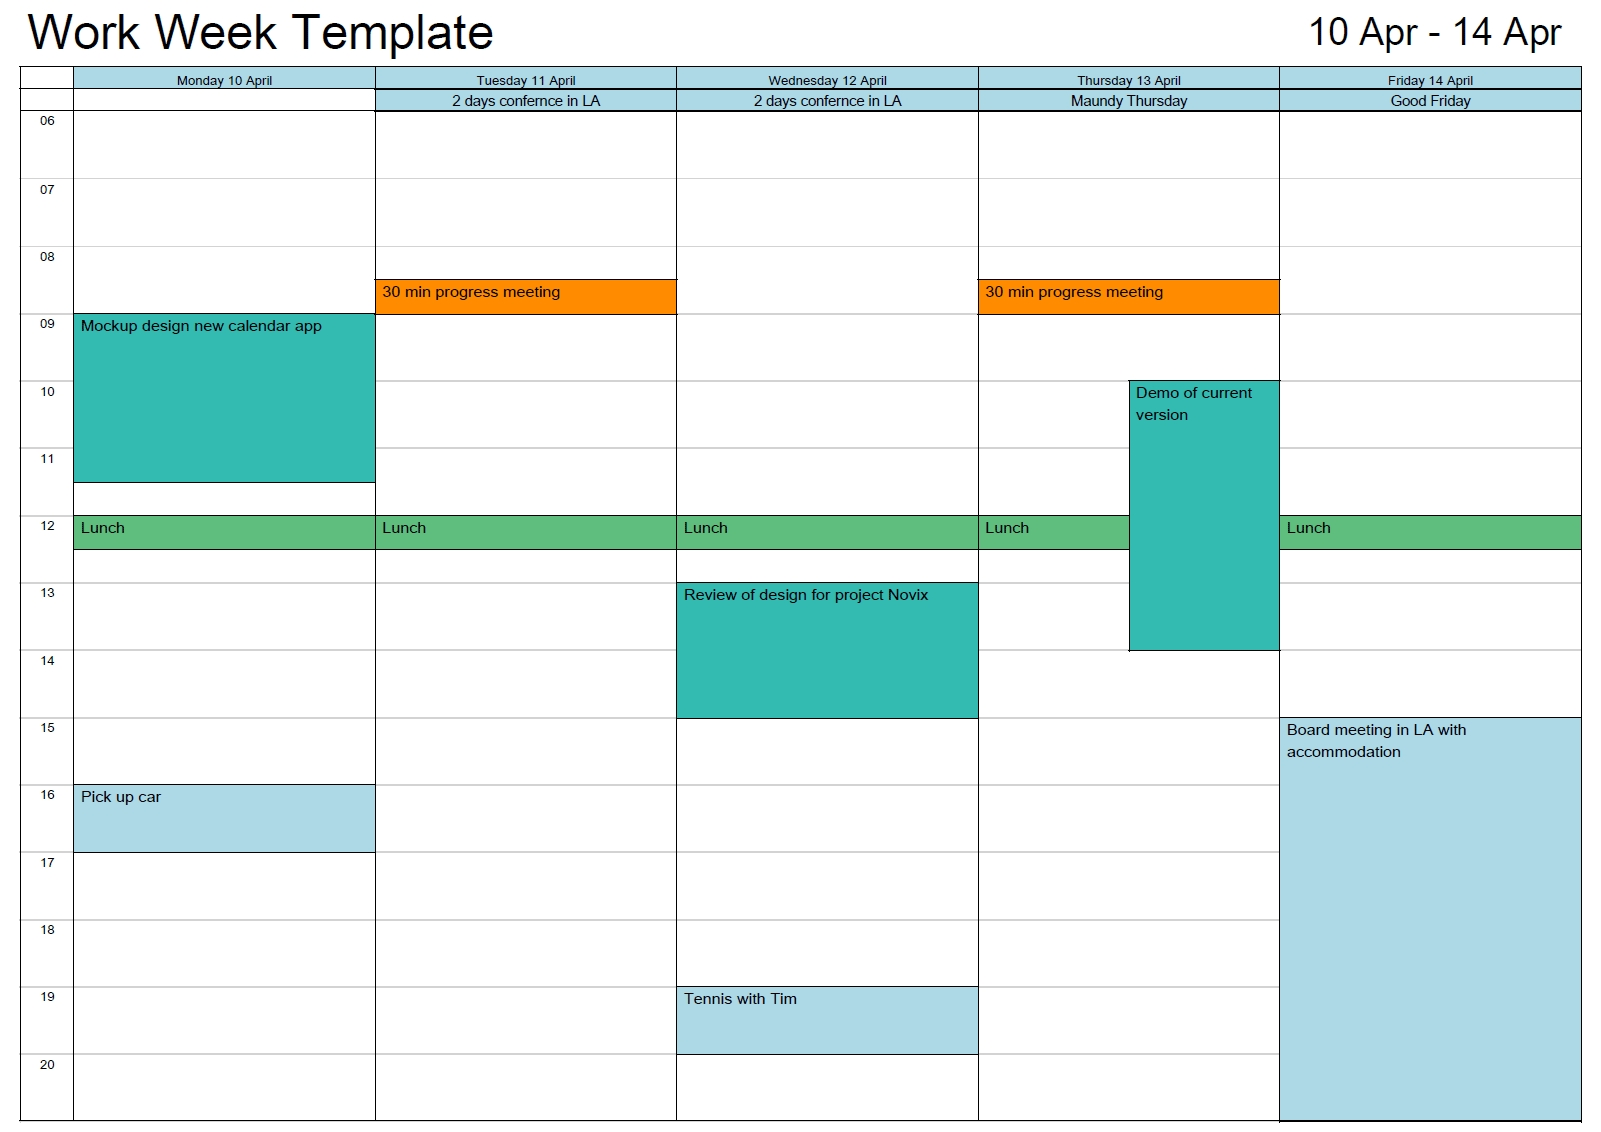 Schedule Template Outlook Printable Calendar In Print Ork Eek Free